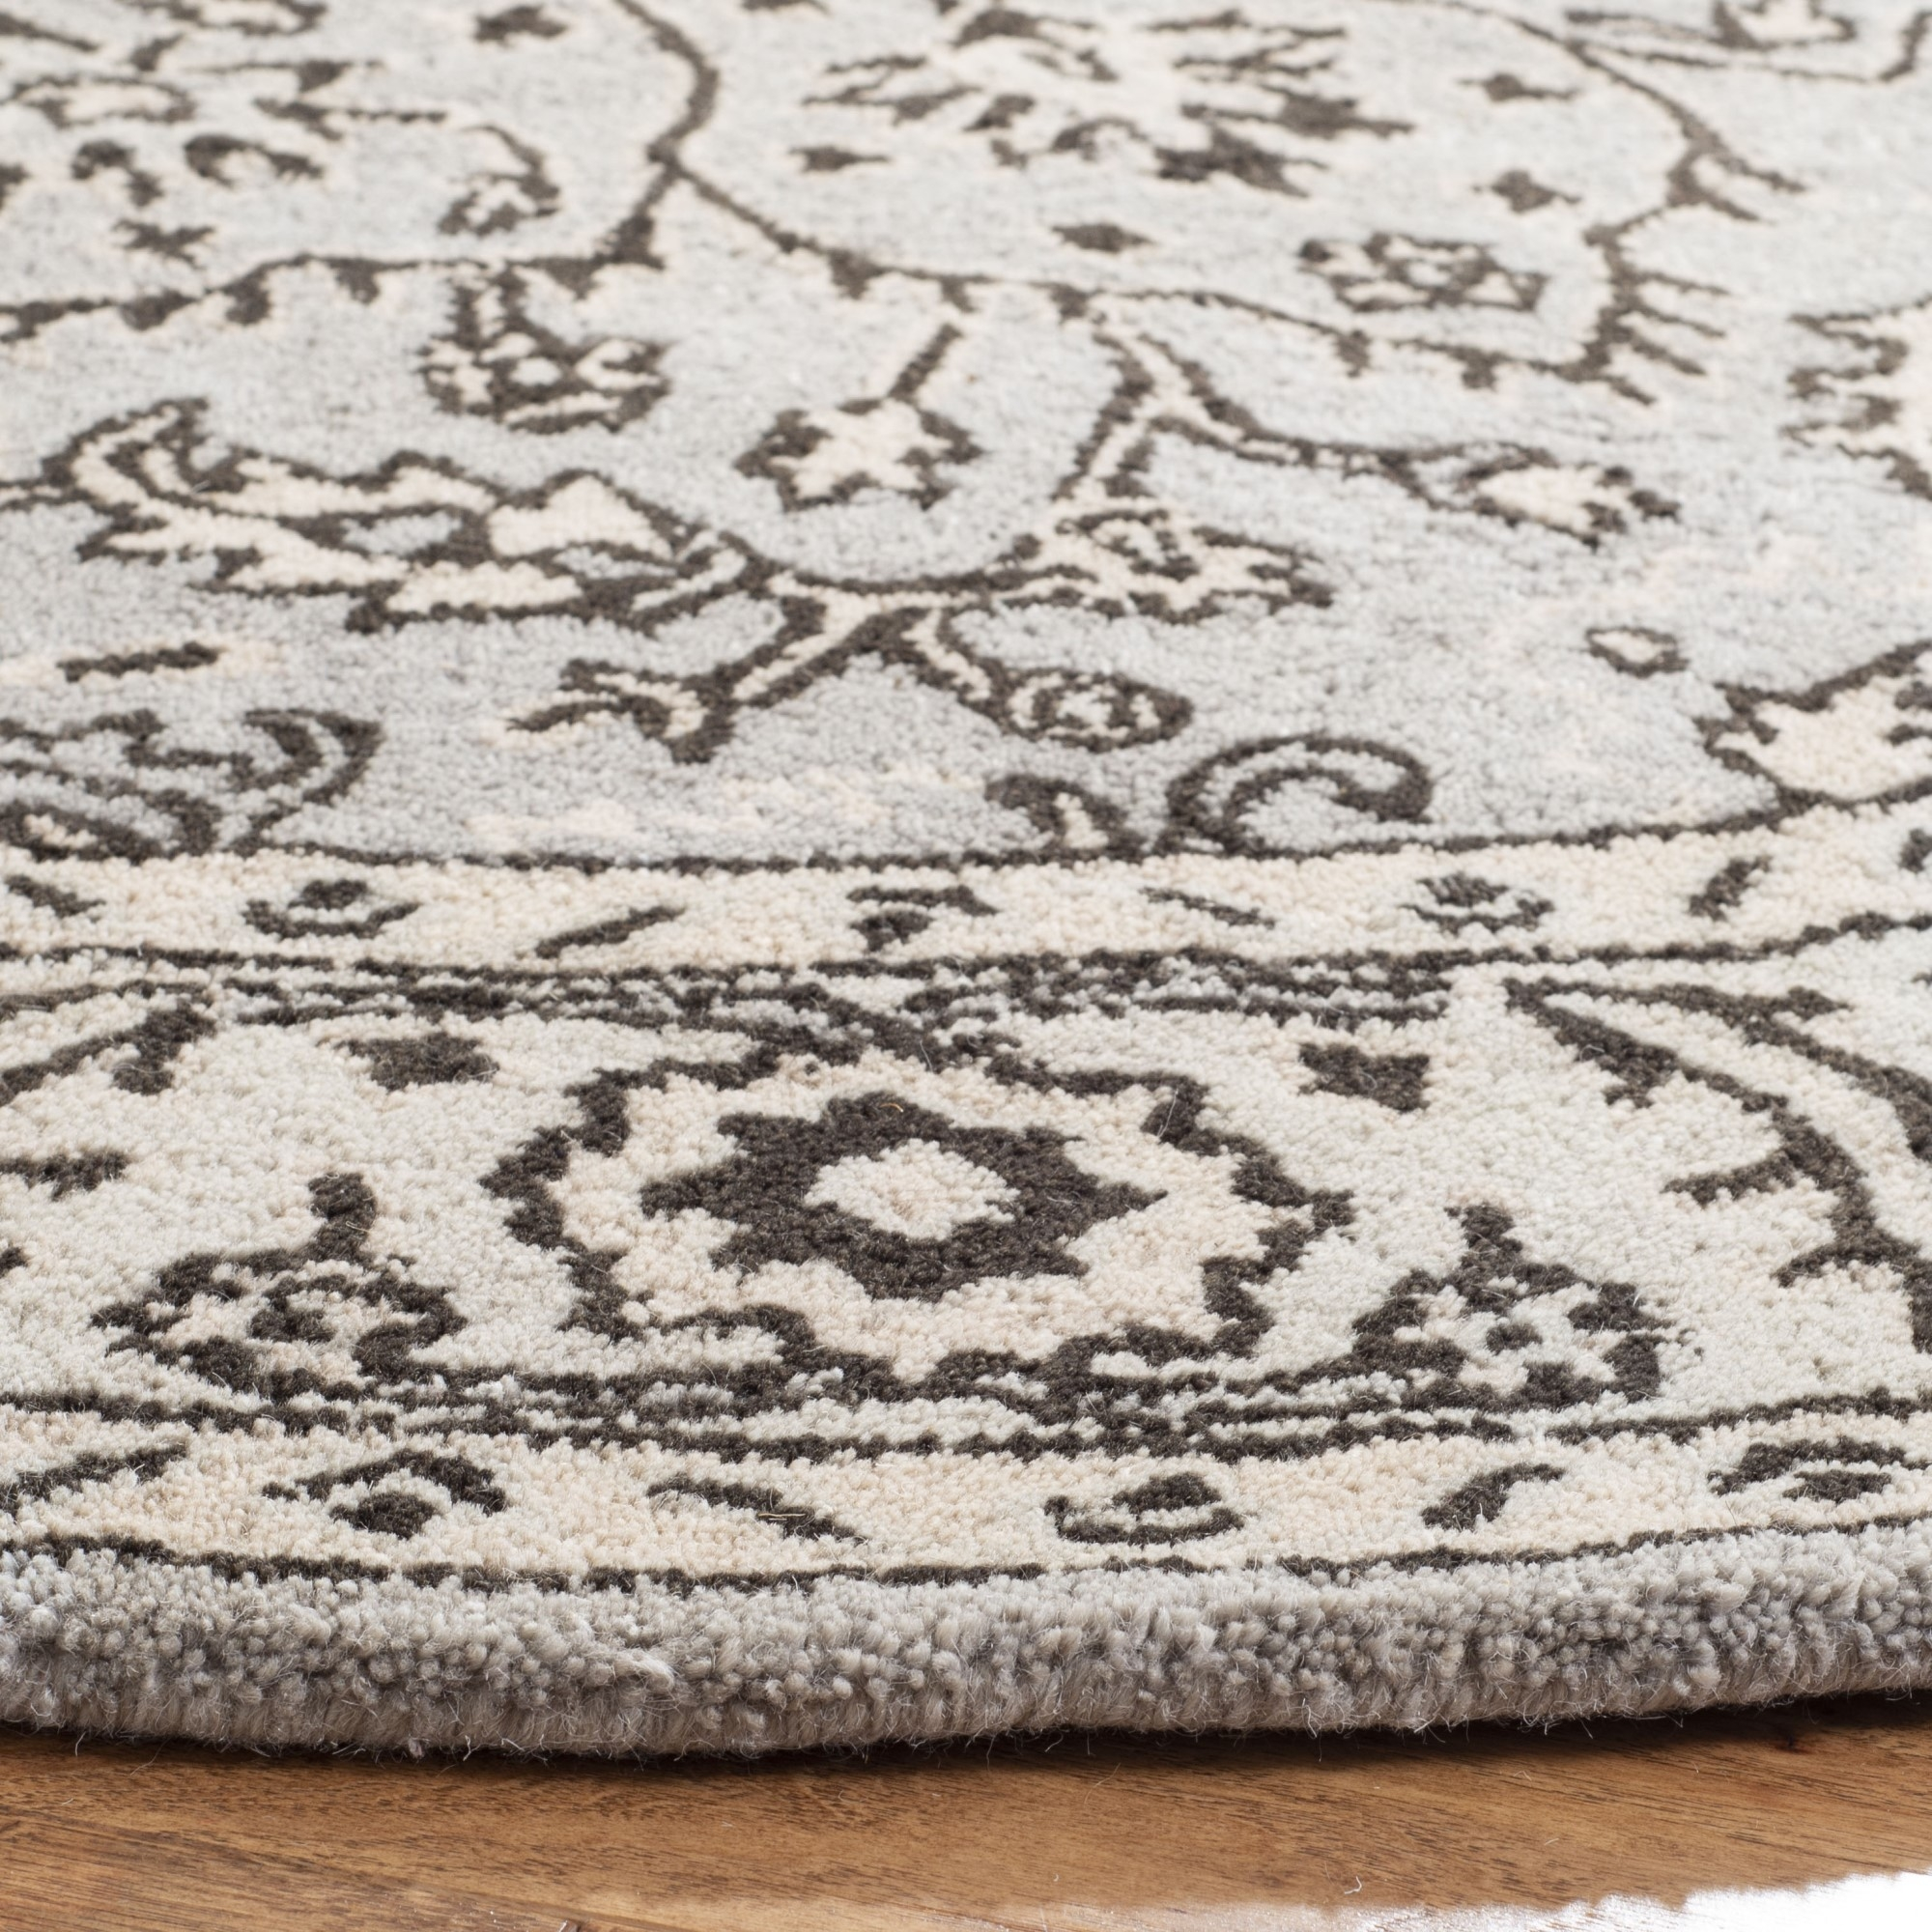 Grey And Beige Rug You Ll Love In 2021 Visualhunt